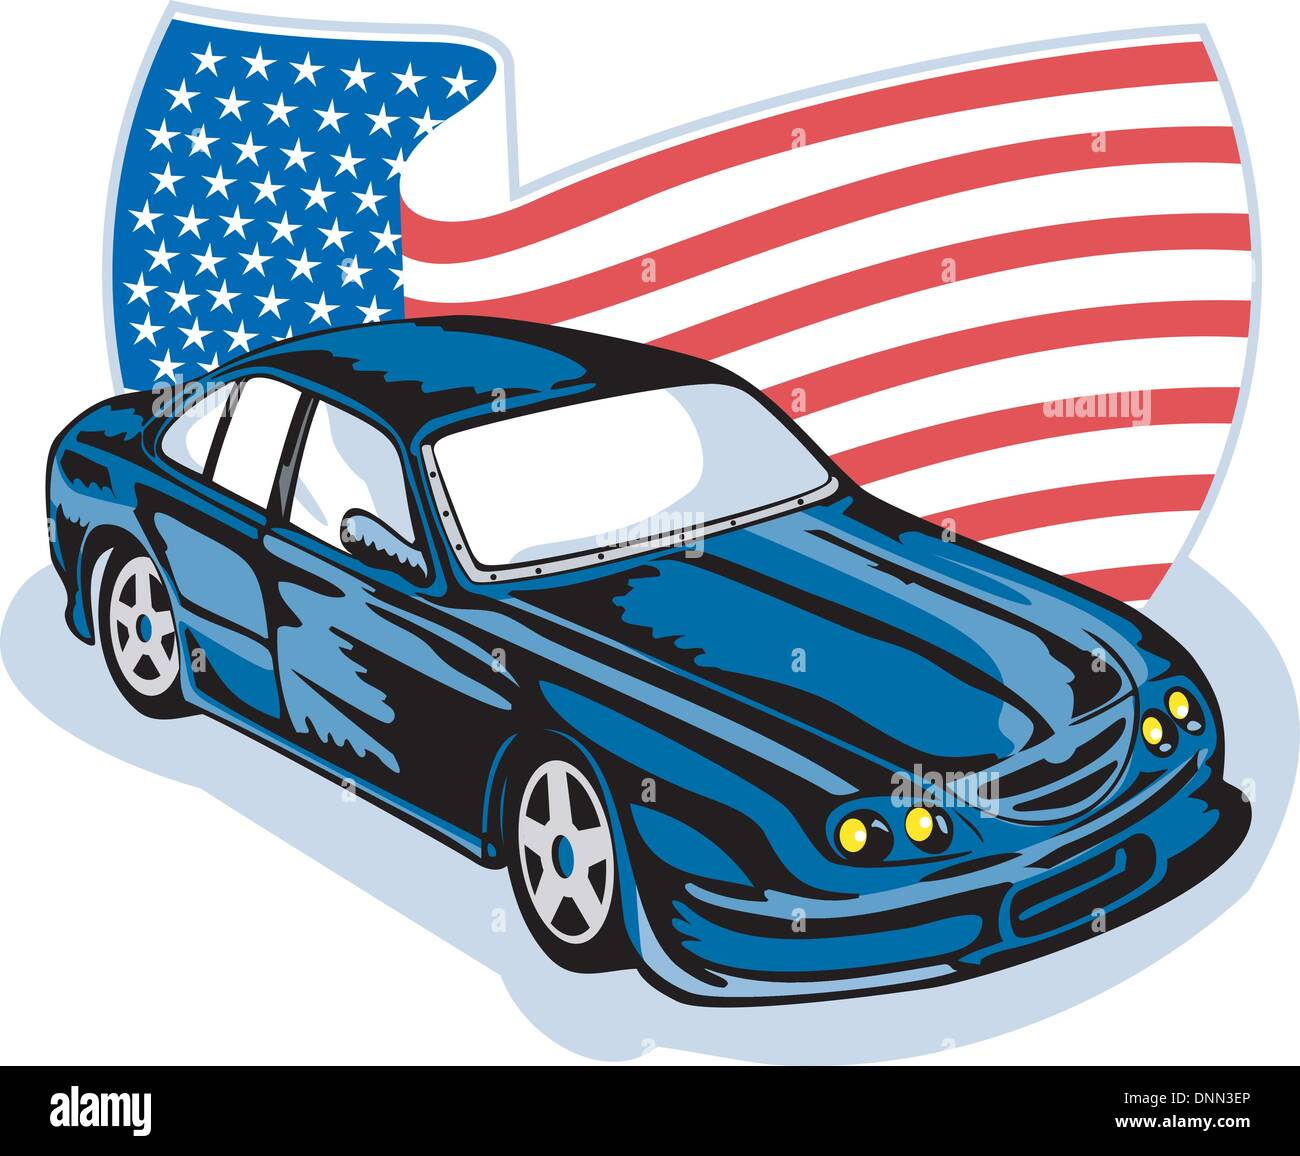 graphic design illustration of an american ford gt muscle car with